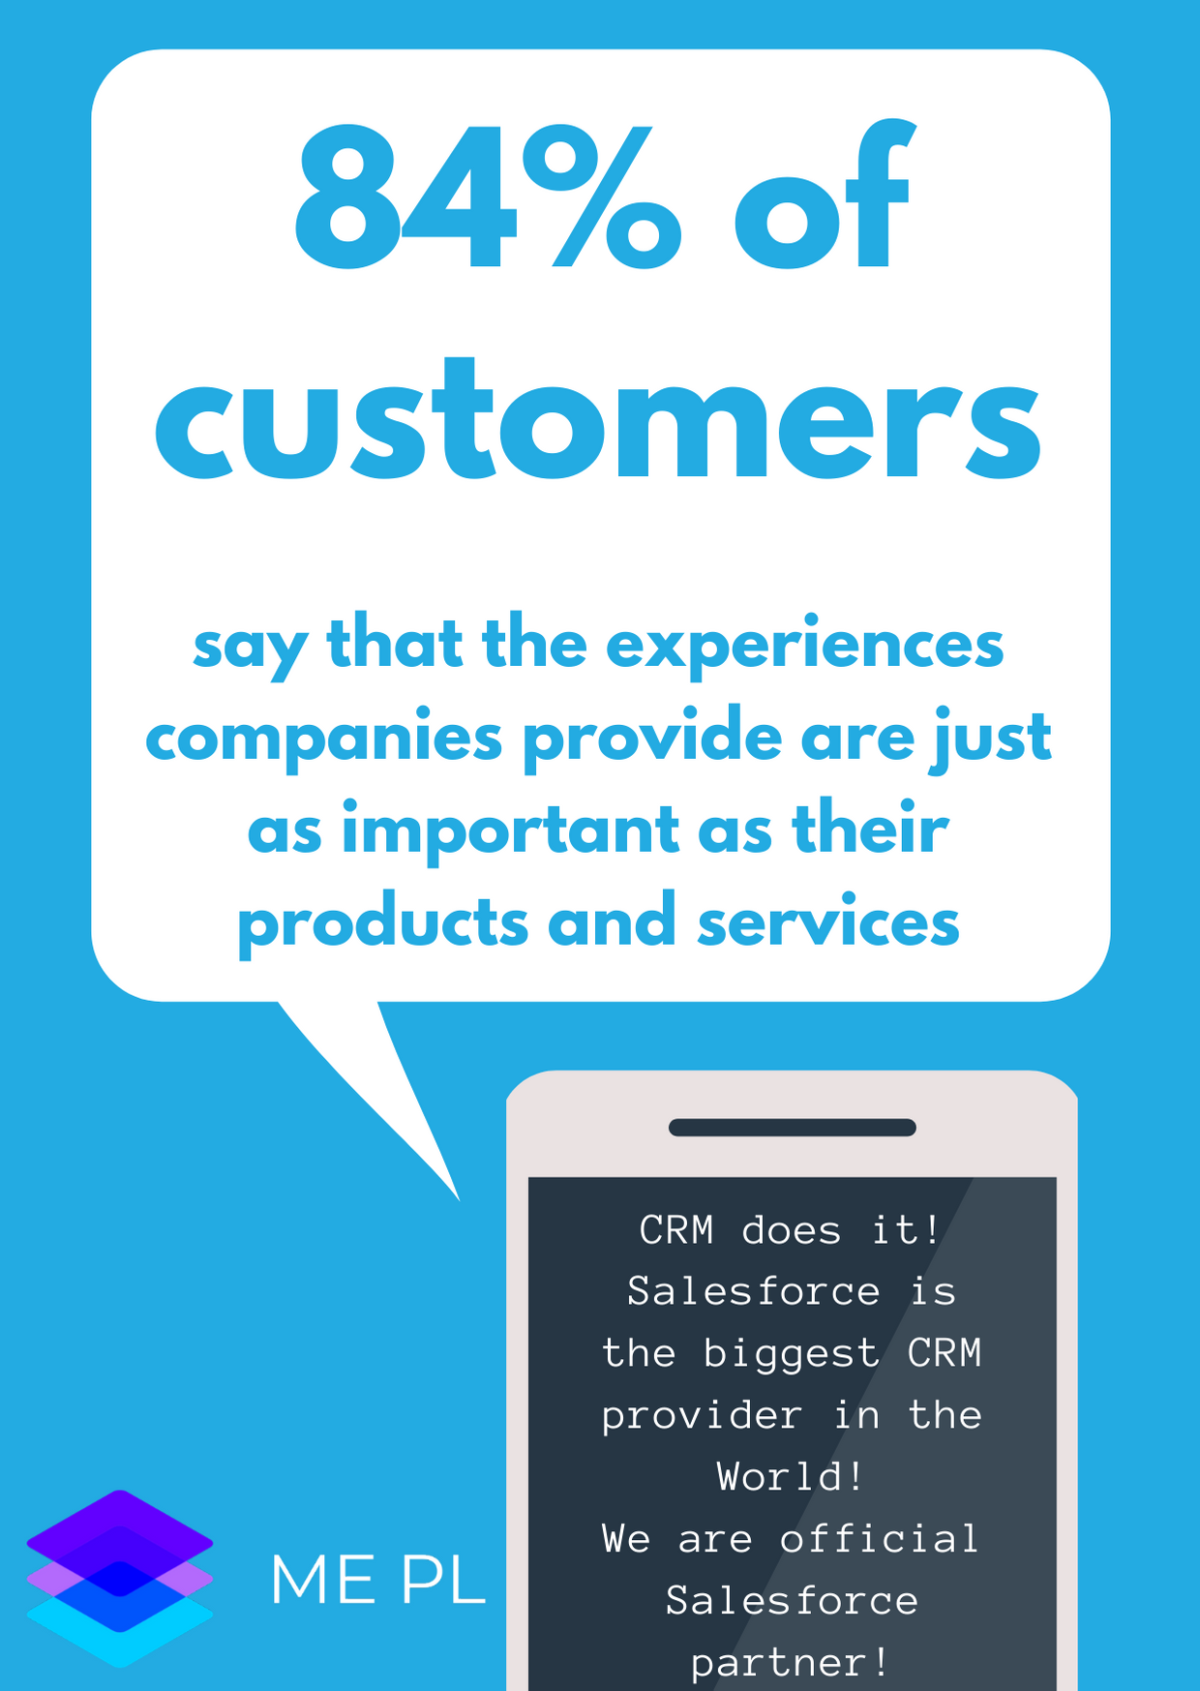 84% of customers say that the experiences companies provide are just as important as their products and services